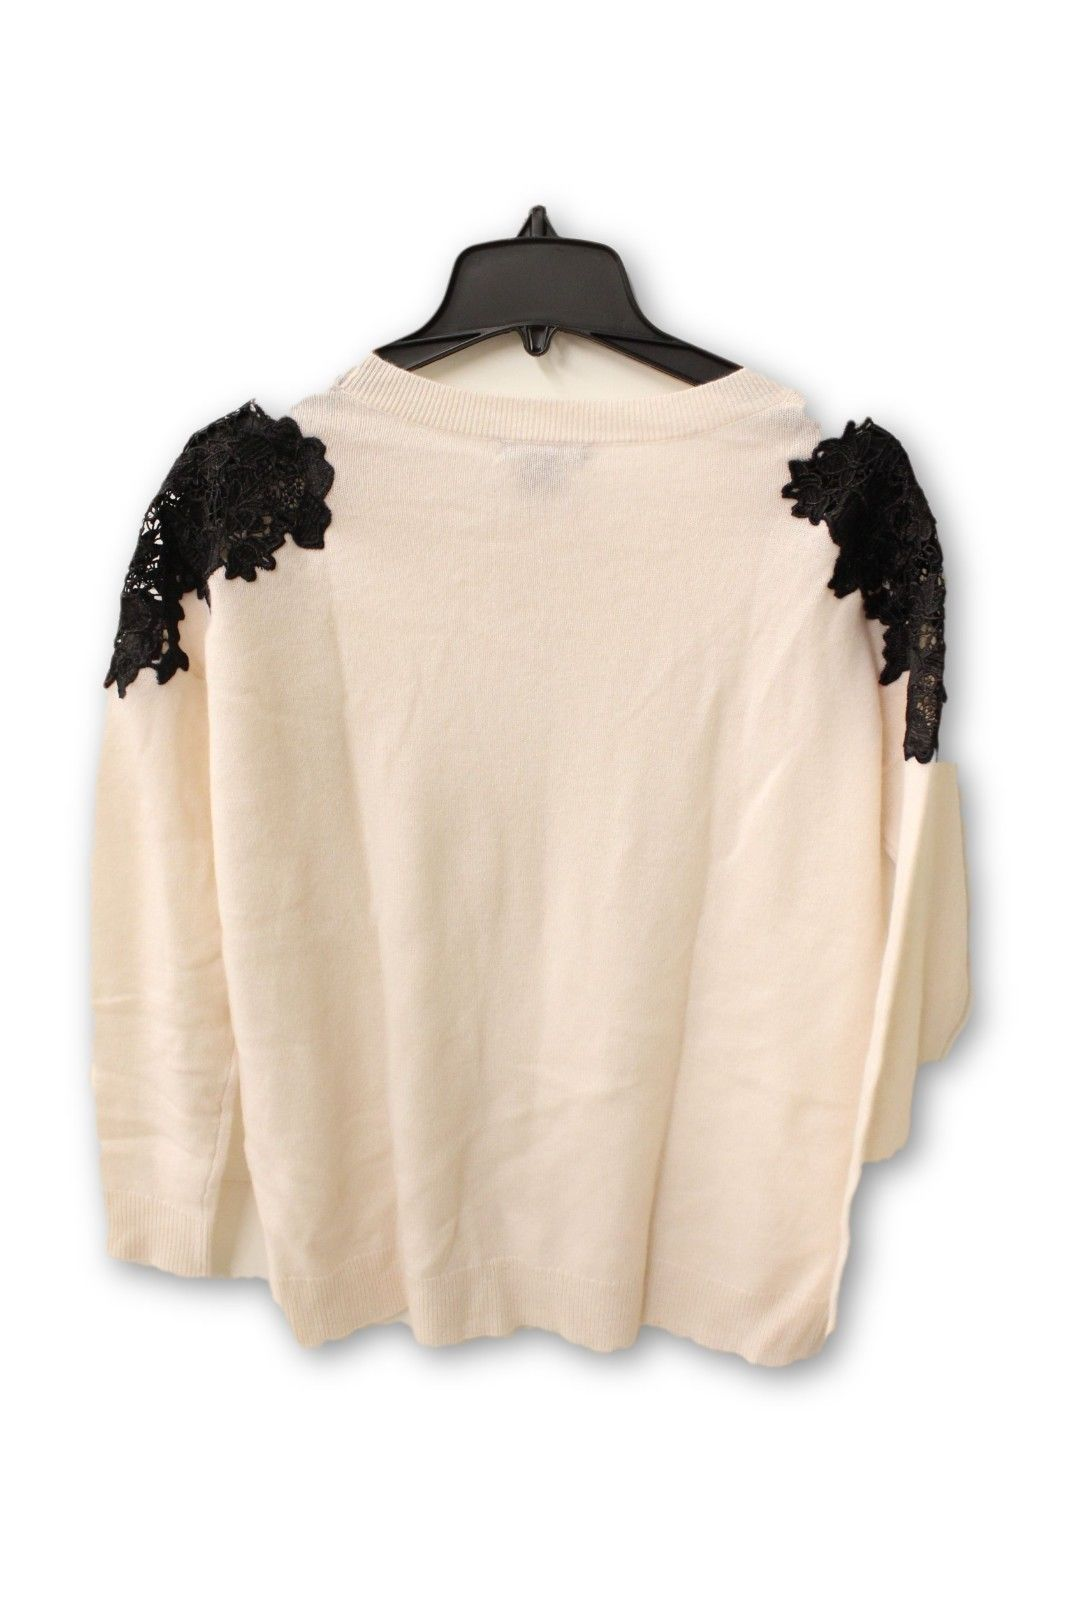 Bloomingdale's Women's Cashmere - Beige Crew Neck with Black Lace Sweater M NWT